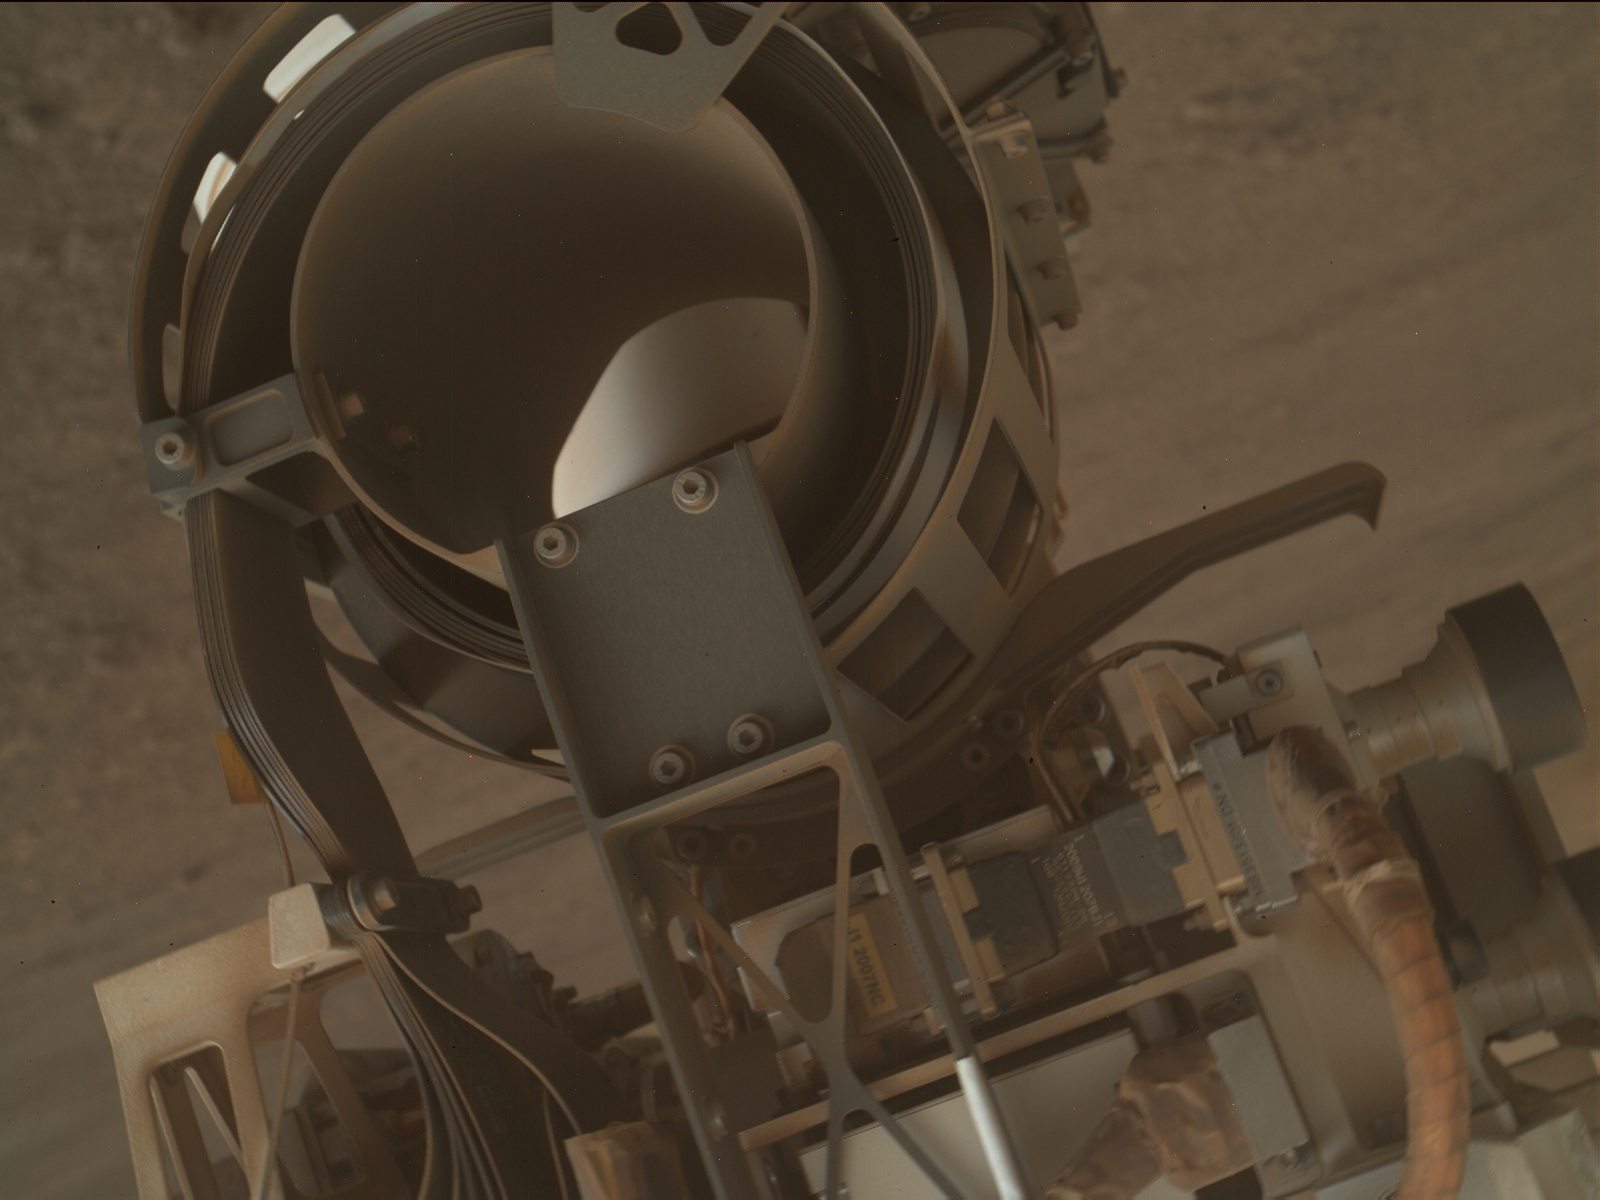 Nasa's Mars rover Curiosity acquired this image using its Mars Hand Lens Imager (MAHLI) on Sol 2250